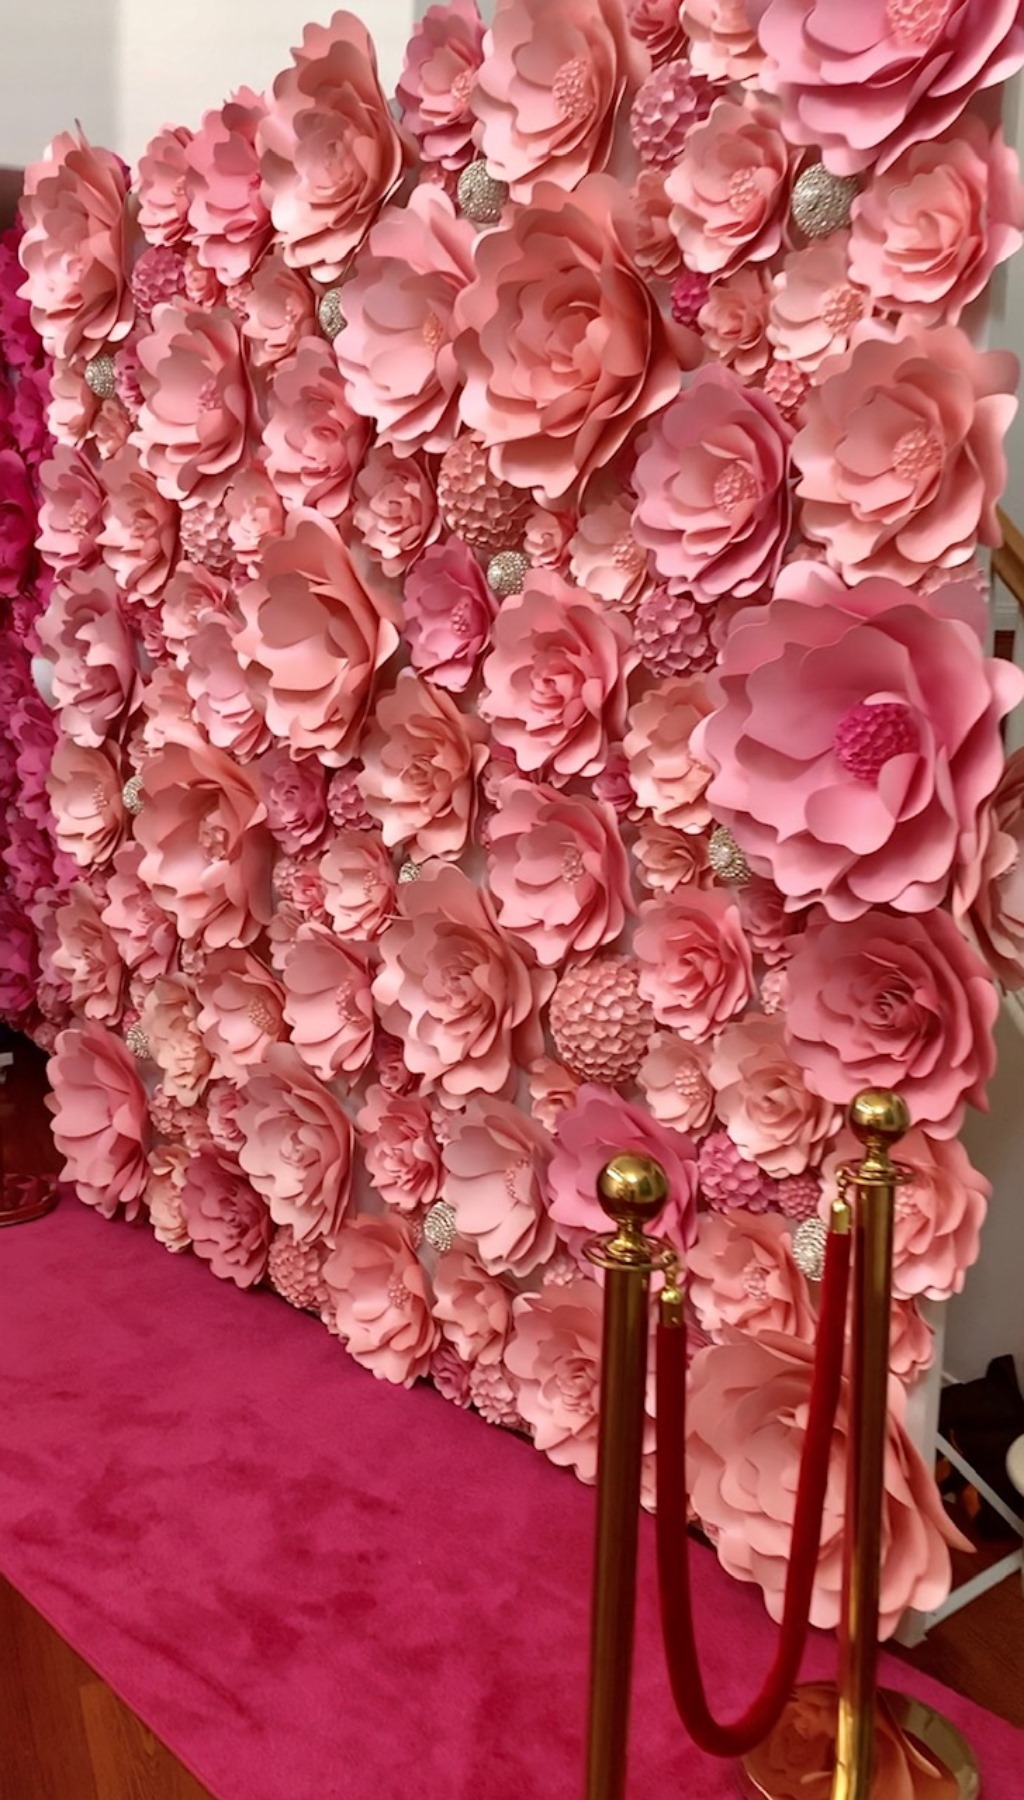 I create customized, handcrafted freestanding flower wall backdrops ranging from 8 ft tall by 6 ft wide to as large as 12 ft tall by